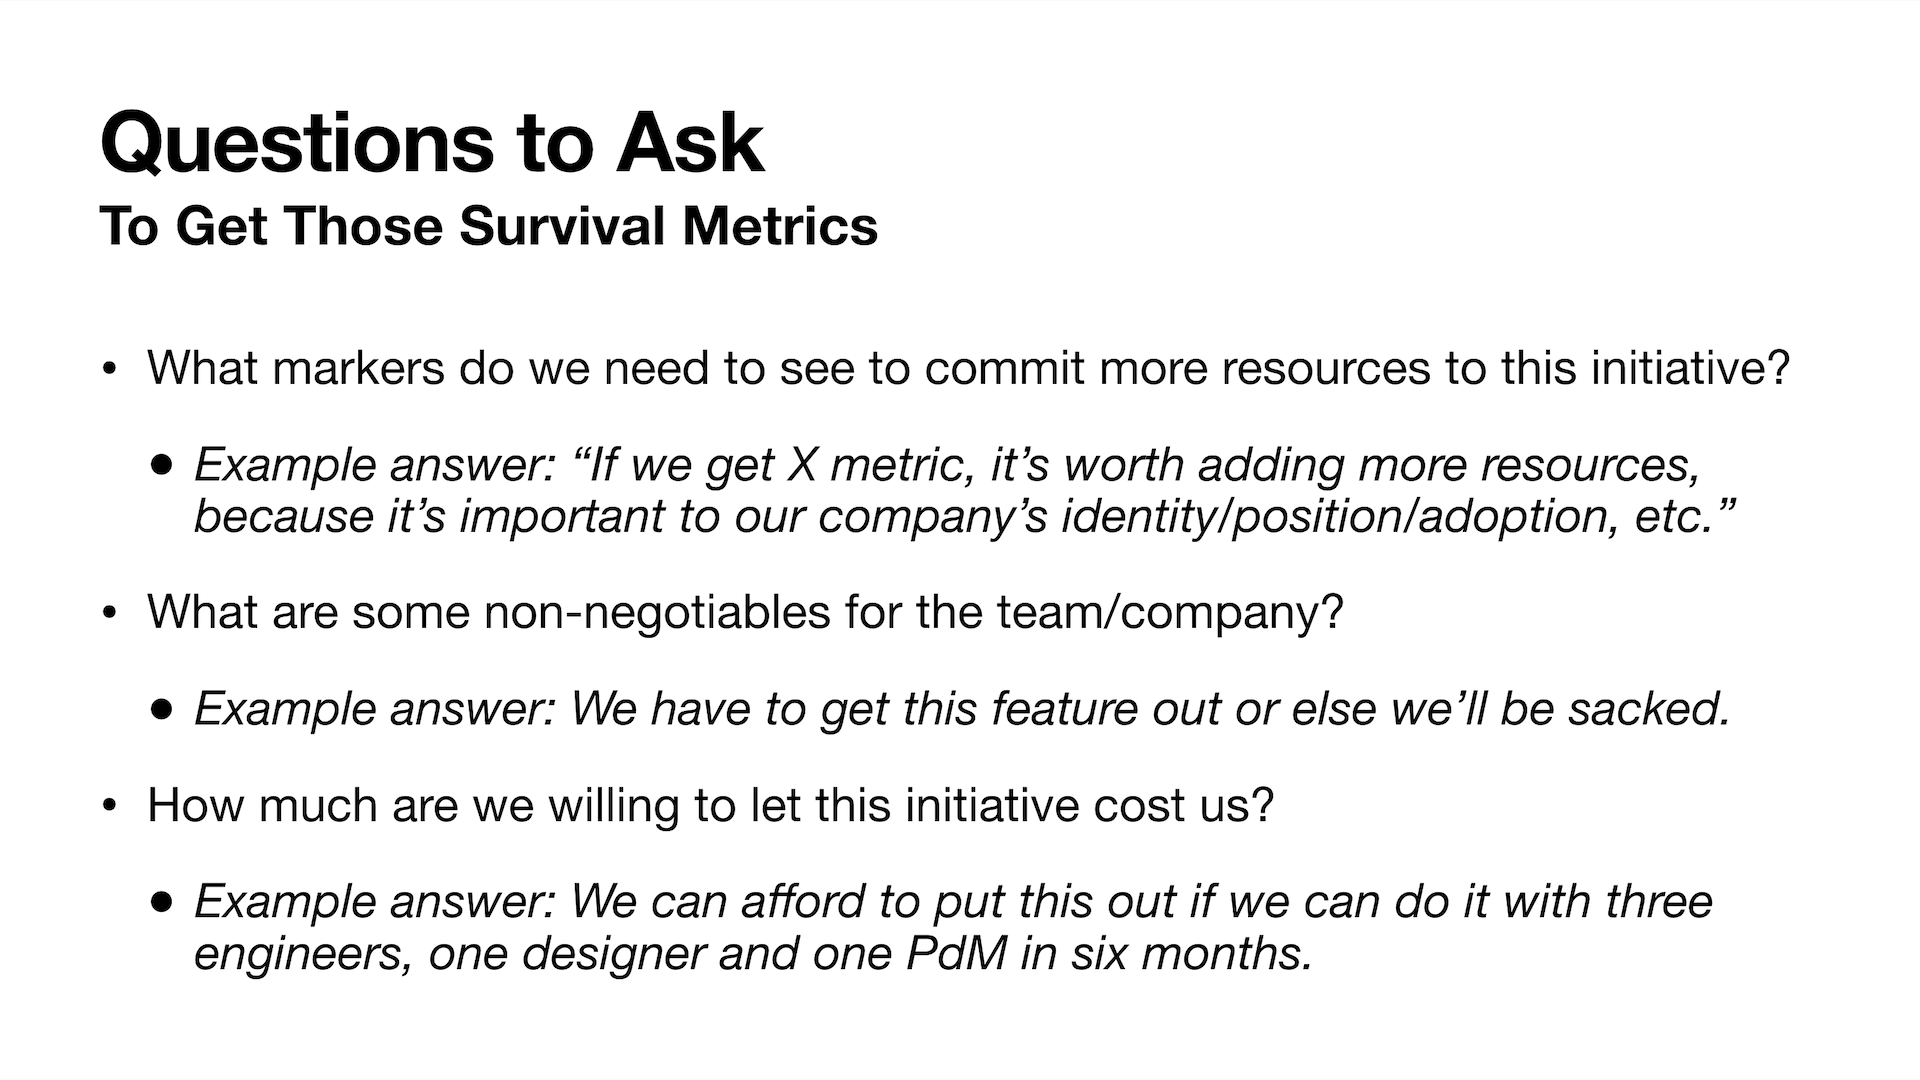 A list of questions to ask to get survival metrics